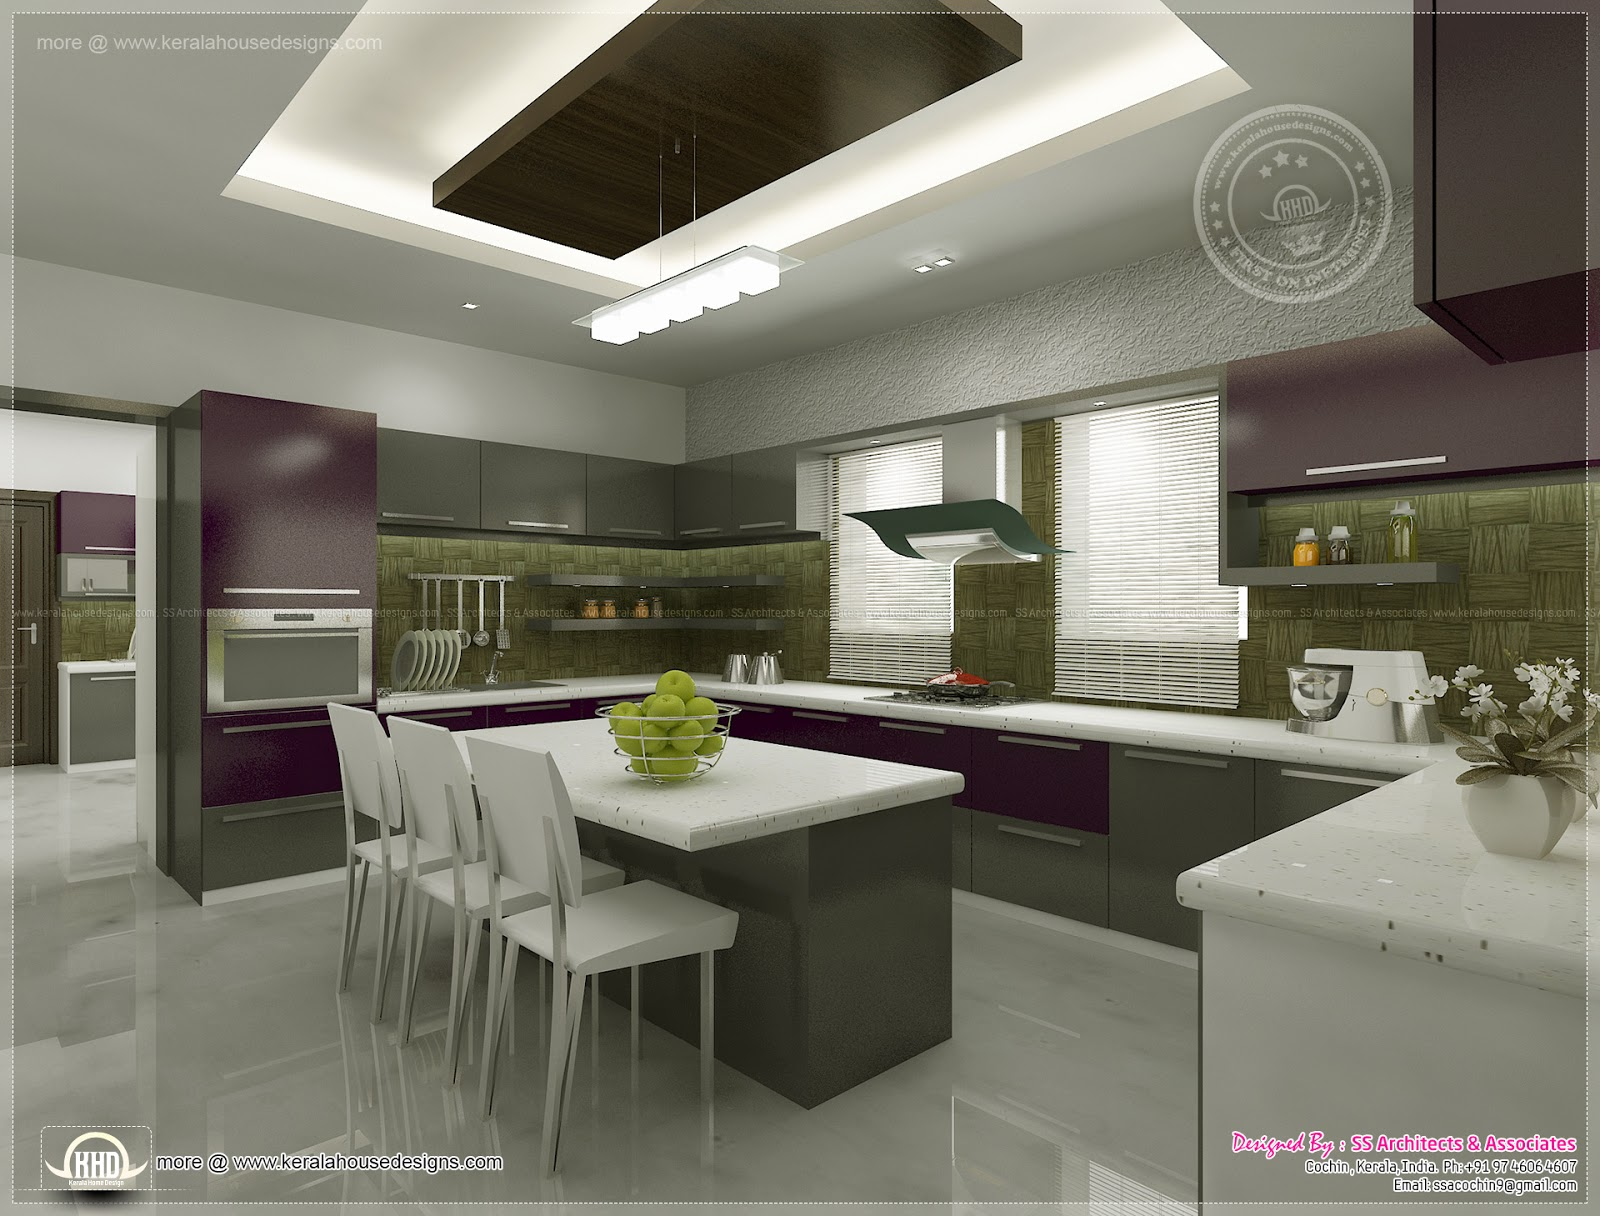 Kitchen interior views by ss architects cochin kerala for Kitchen interior design pictures